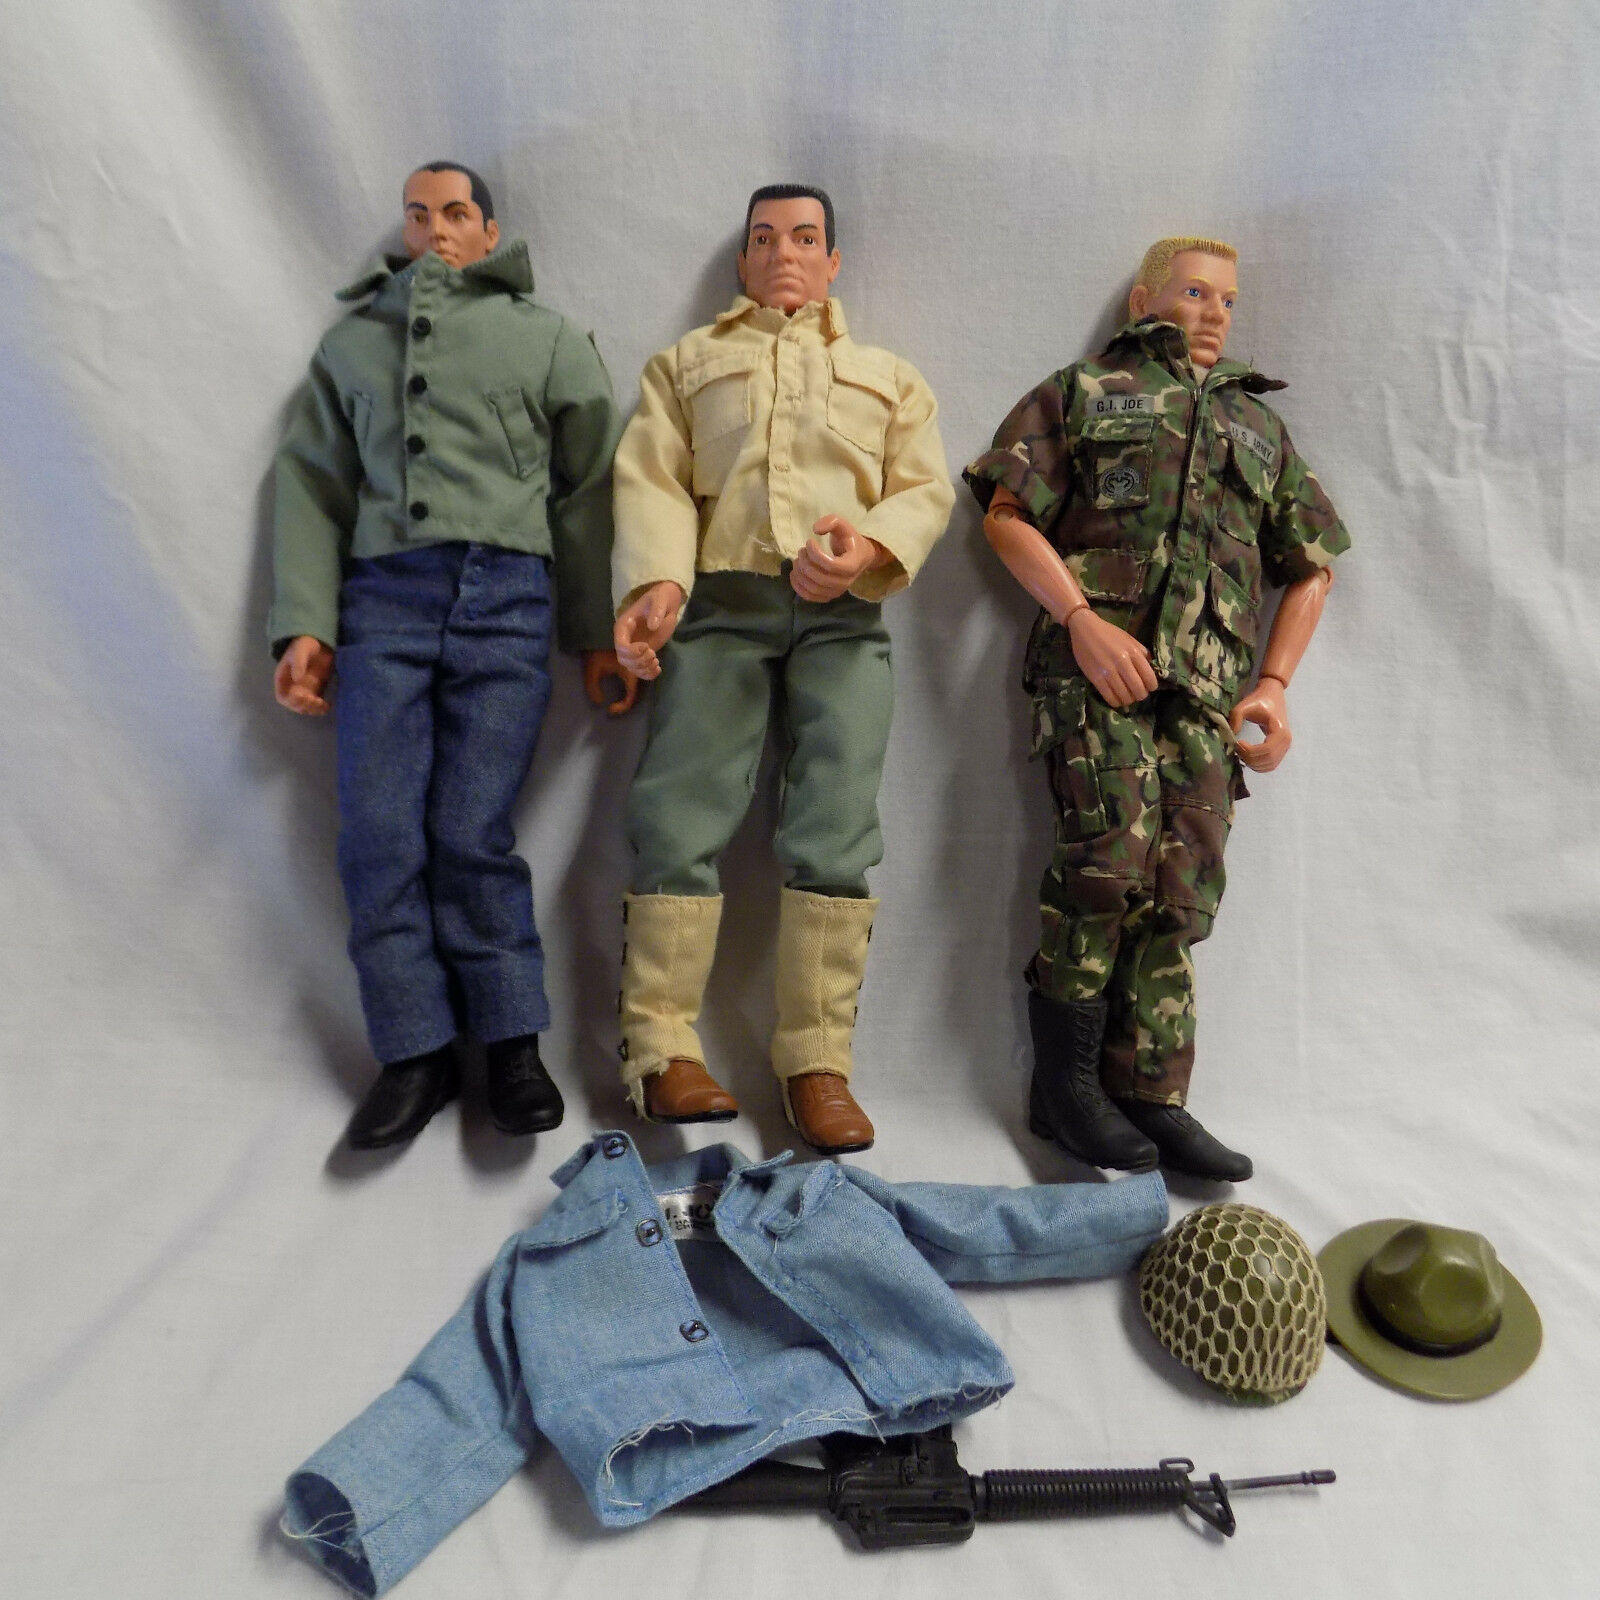 GI Joe Lot of 3 Military Action Figures 1990s Some Accessories